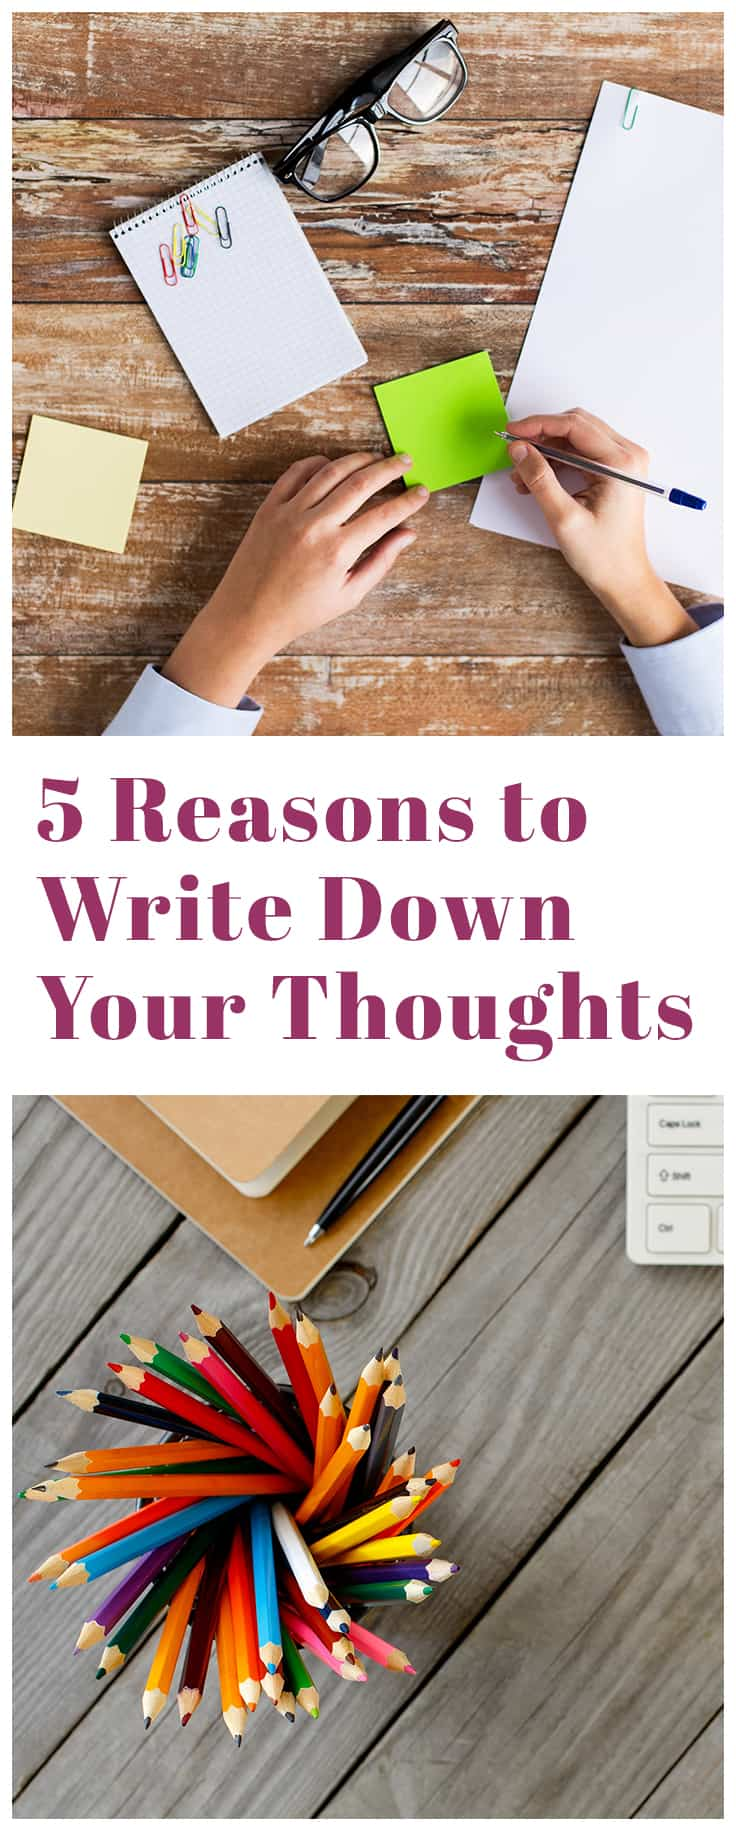 Taking a break to write out whatever is on our mind can greatly improve your quality of life. Here are few reasons to start writing down your thoughts: - You're more likely to remember things you write down - It makes you look more professional - You won't forget important tasks - It's just plain good for you Click the link to jump in! #journaling #productivity #buildinggoodhabits #goodhabits #healthyhabits #benefitsofwriting #benefitsofjournaling